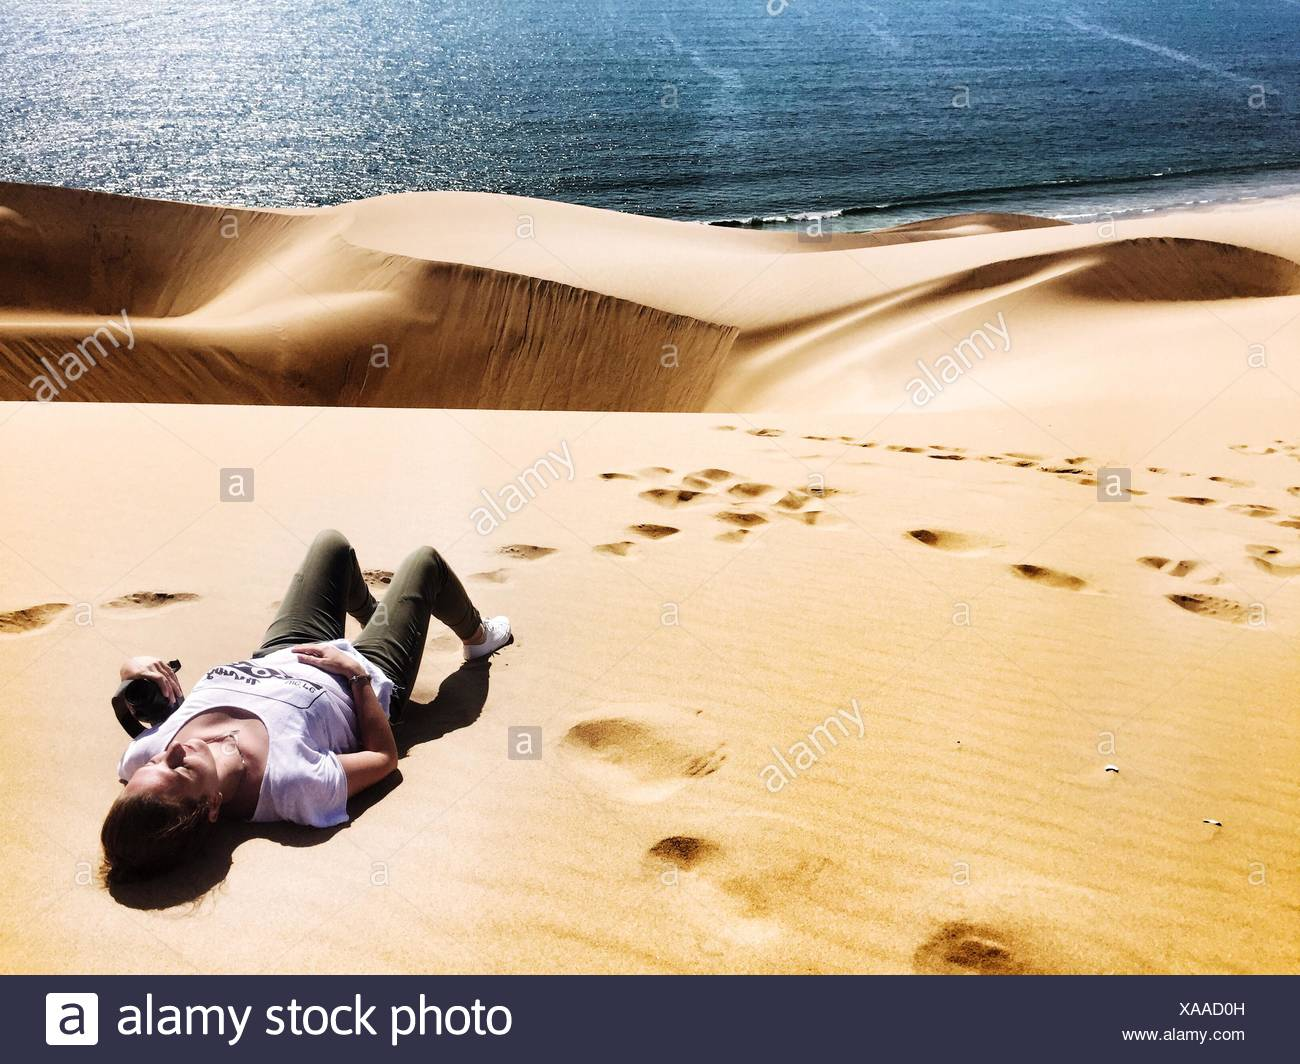 High Angle View Of Woman Relaxing On Desert By Sea - Stock Image